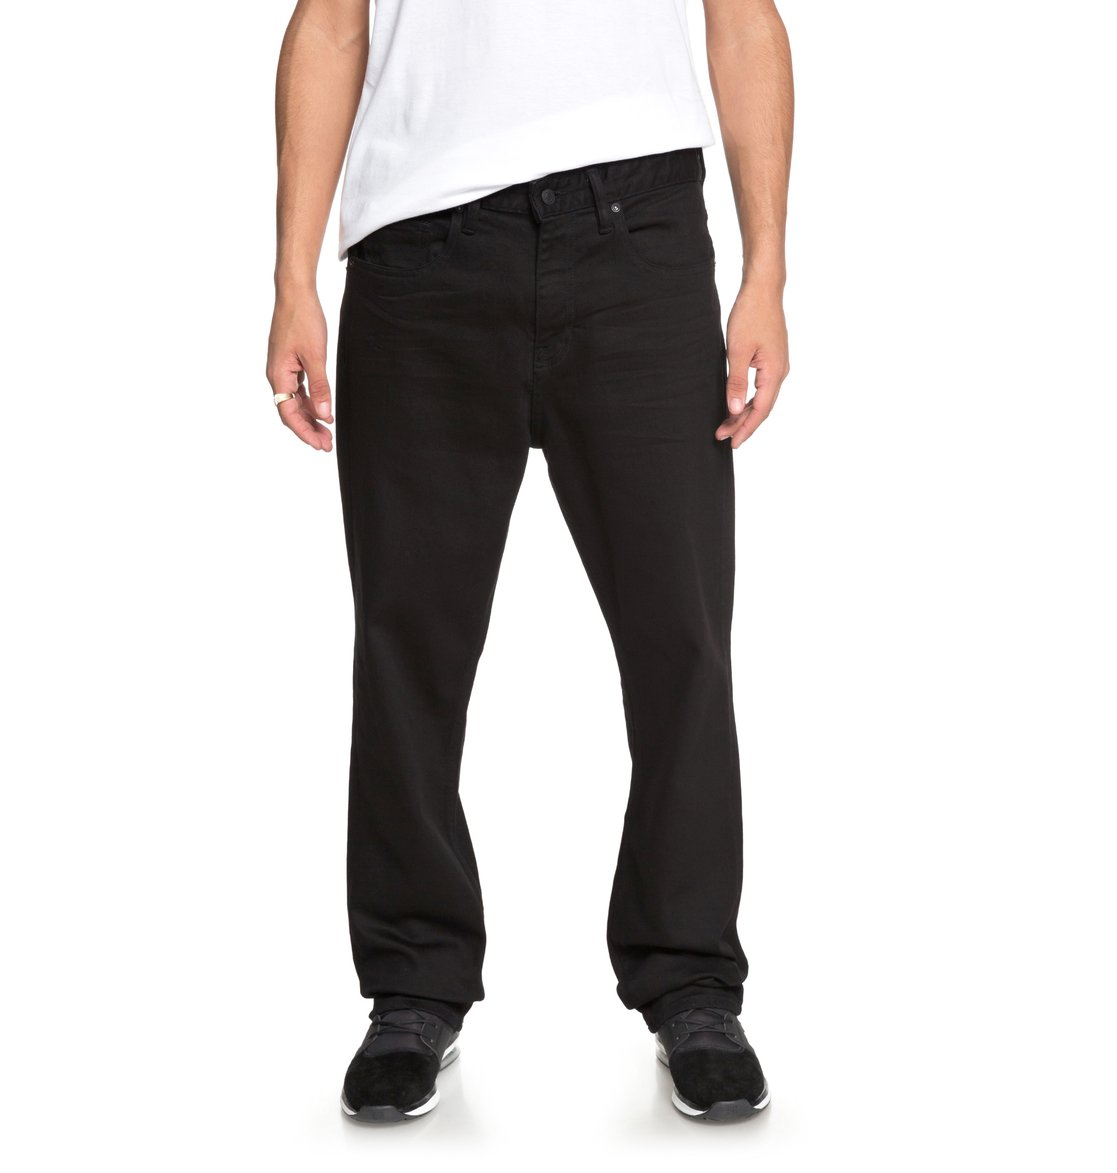 dc shoes Worker Black Rinse Straight - Jeans vestibilità Relaxed da Uomo - Black - DC Shoes